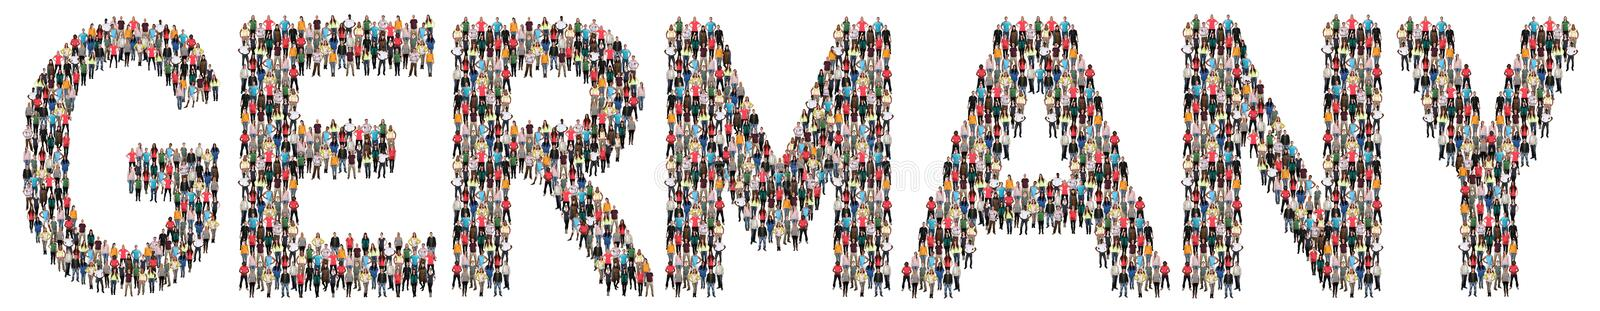 Germany multi ethnic group of people stock photography